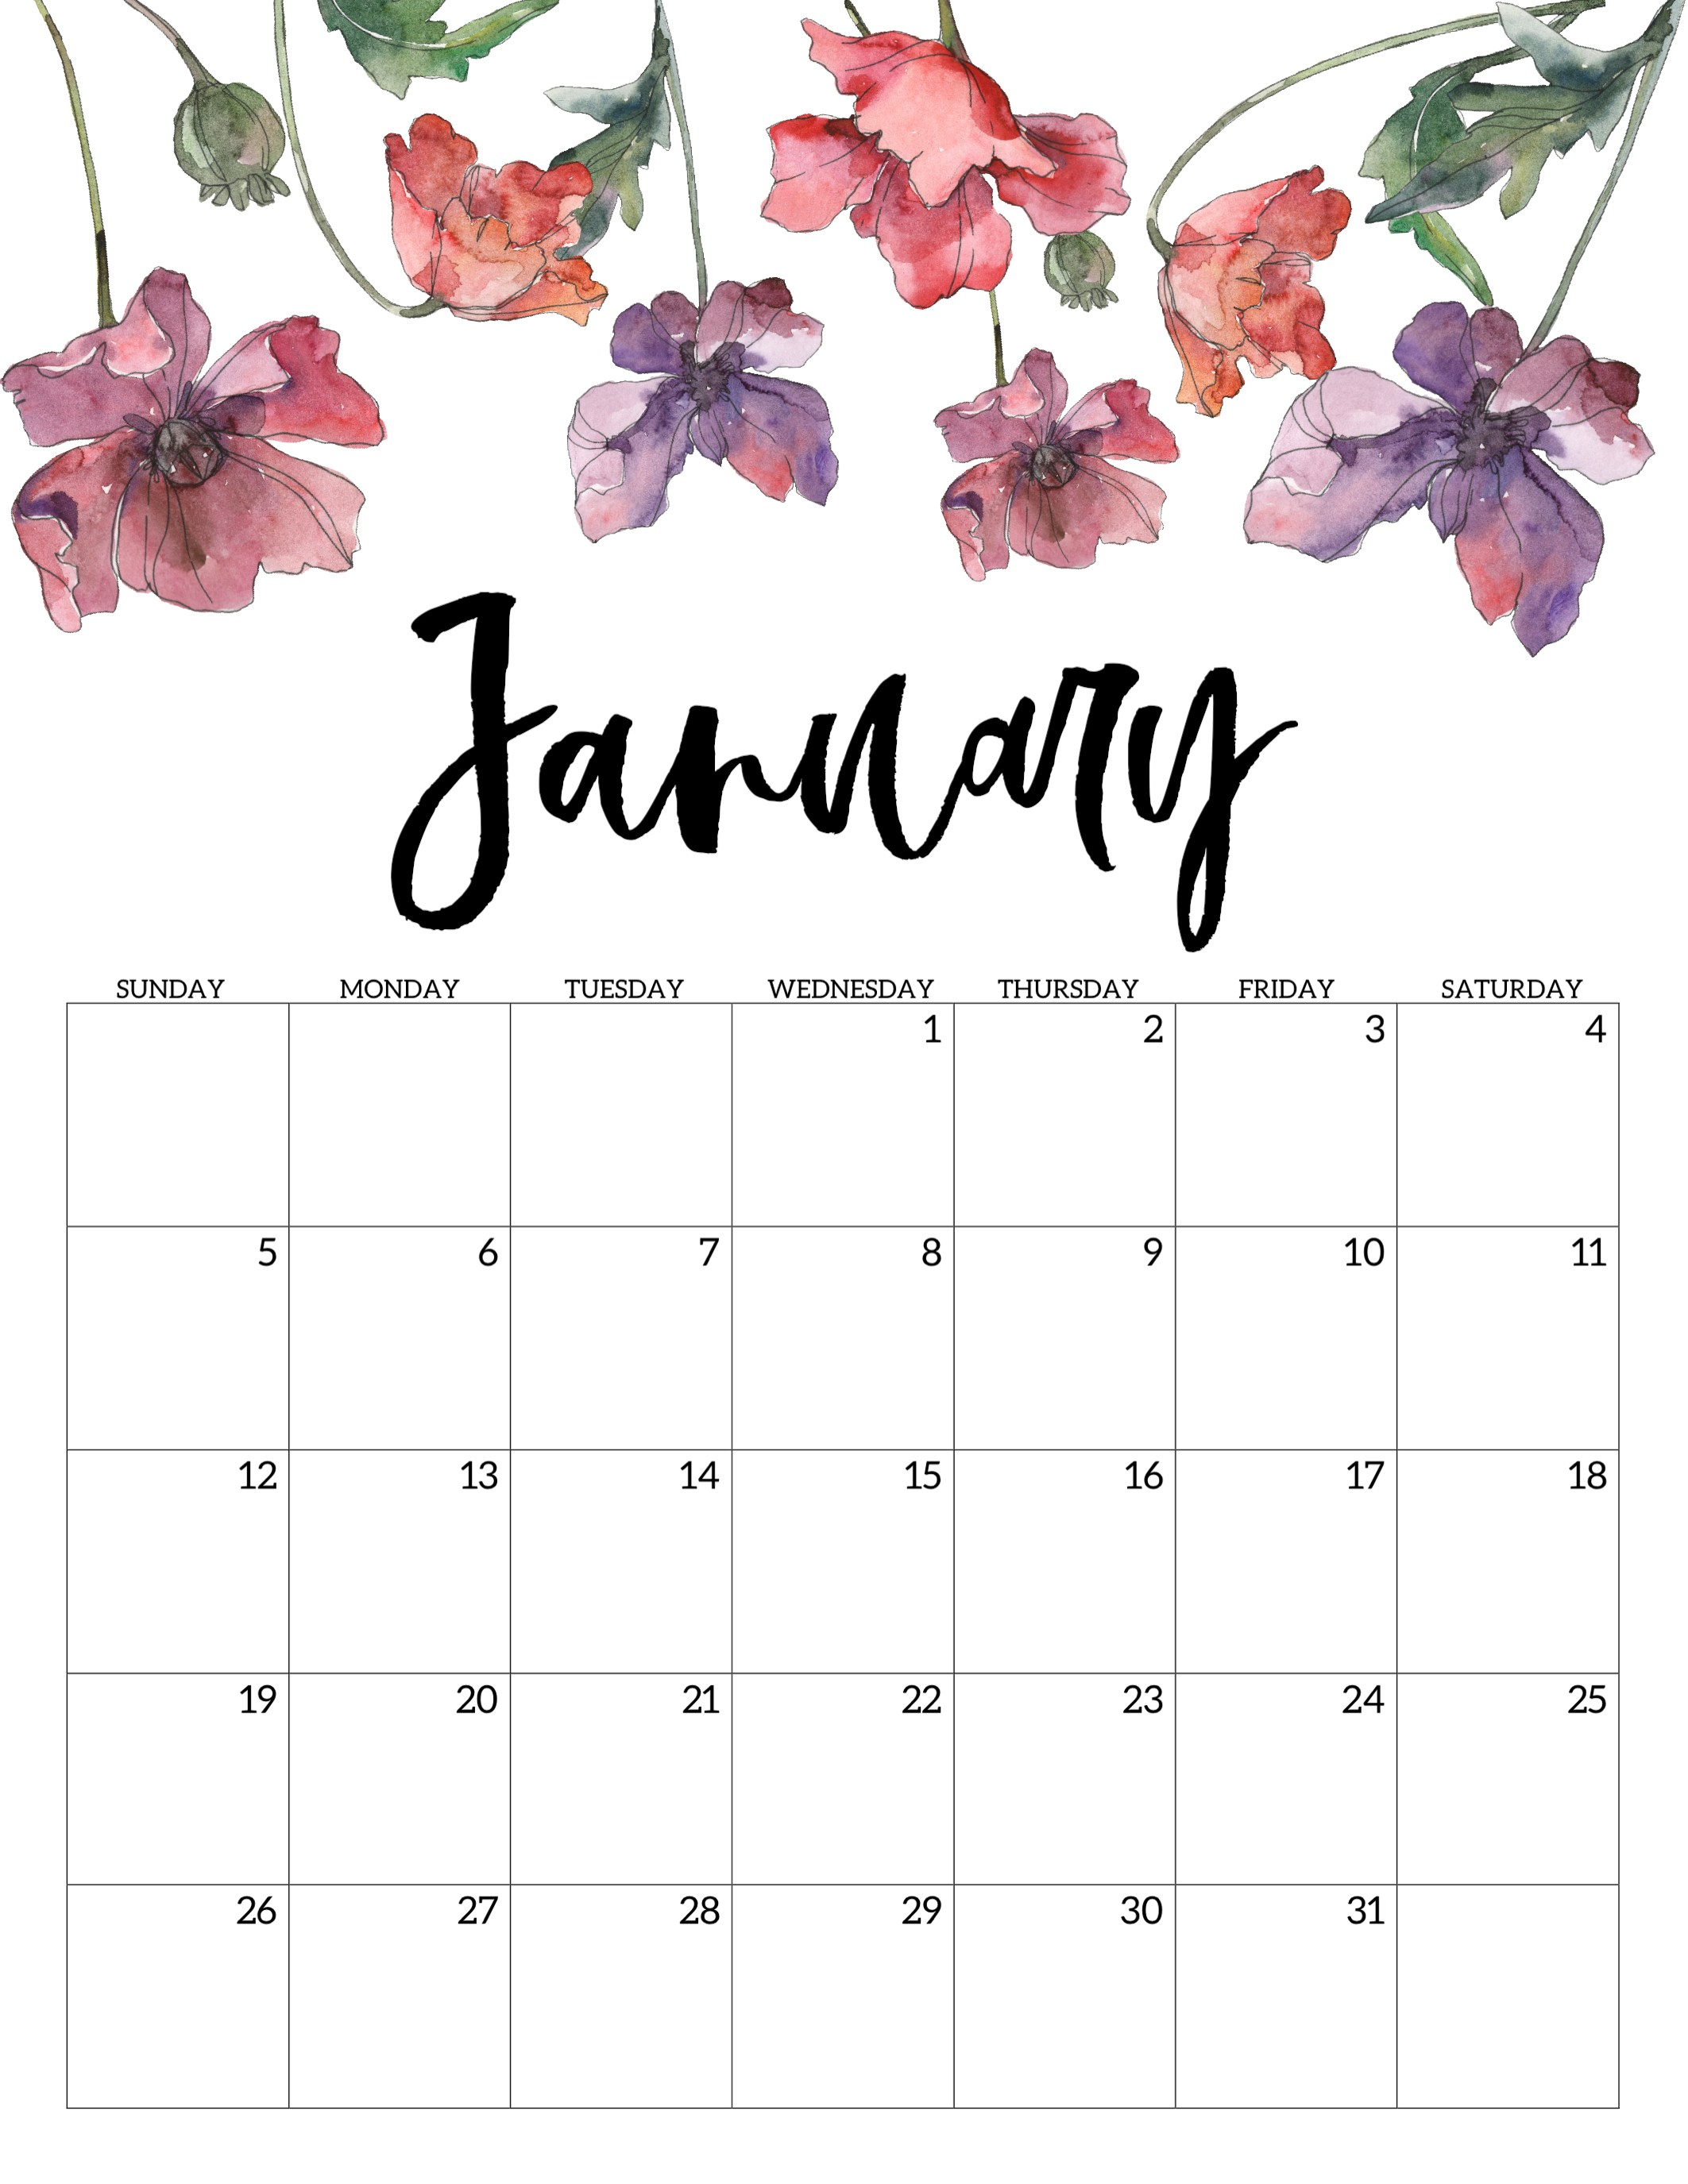 2020 Free Printable Calendar - Floral - Paper Trail Design pertaining to 2020Free Printable Calendars Without Downloading